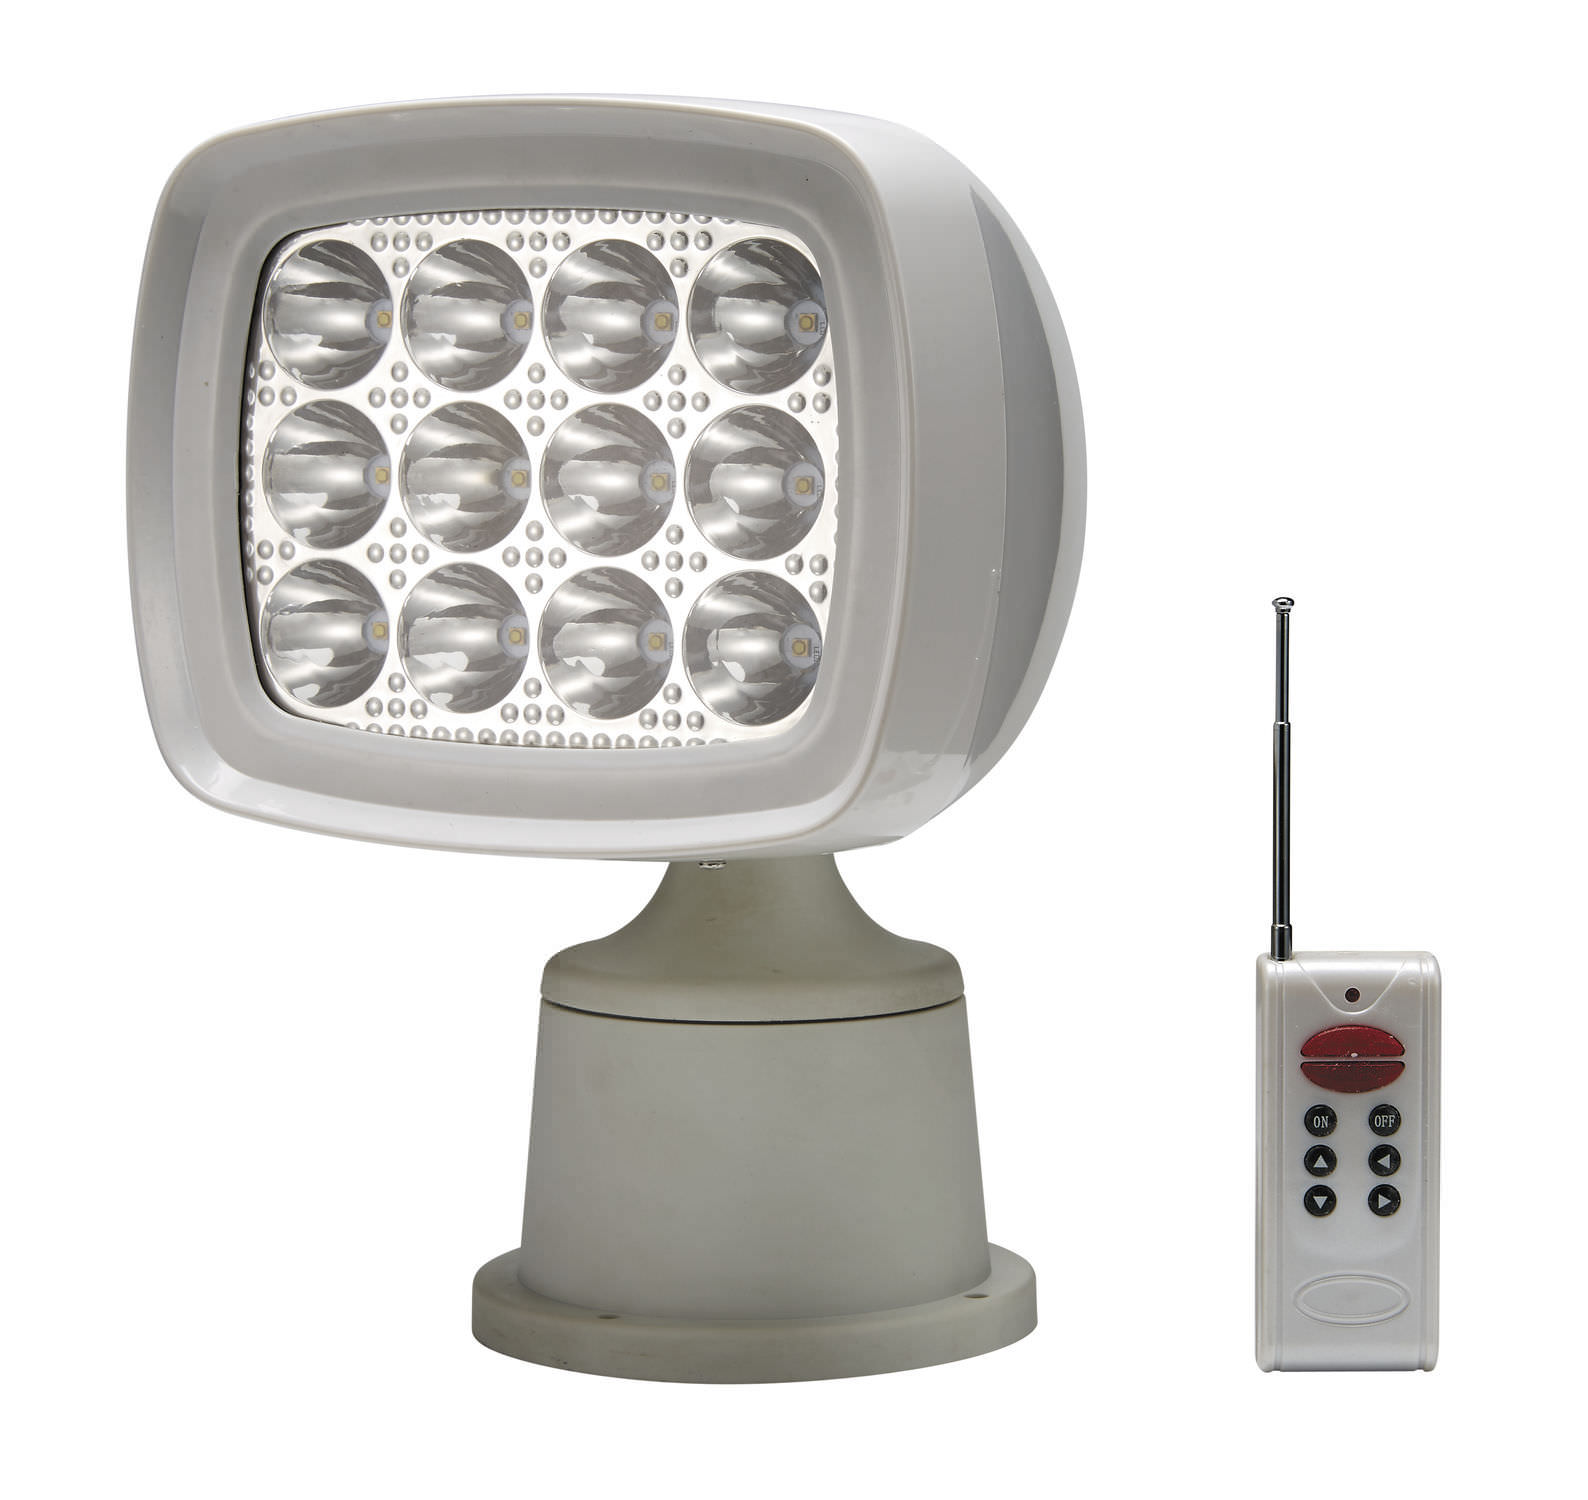 Deck floodlight led remote controlled 01662 wh aaa world deck floodlight led remote controlled 01662 wh aloadofball Gallery